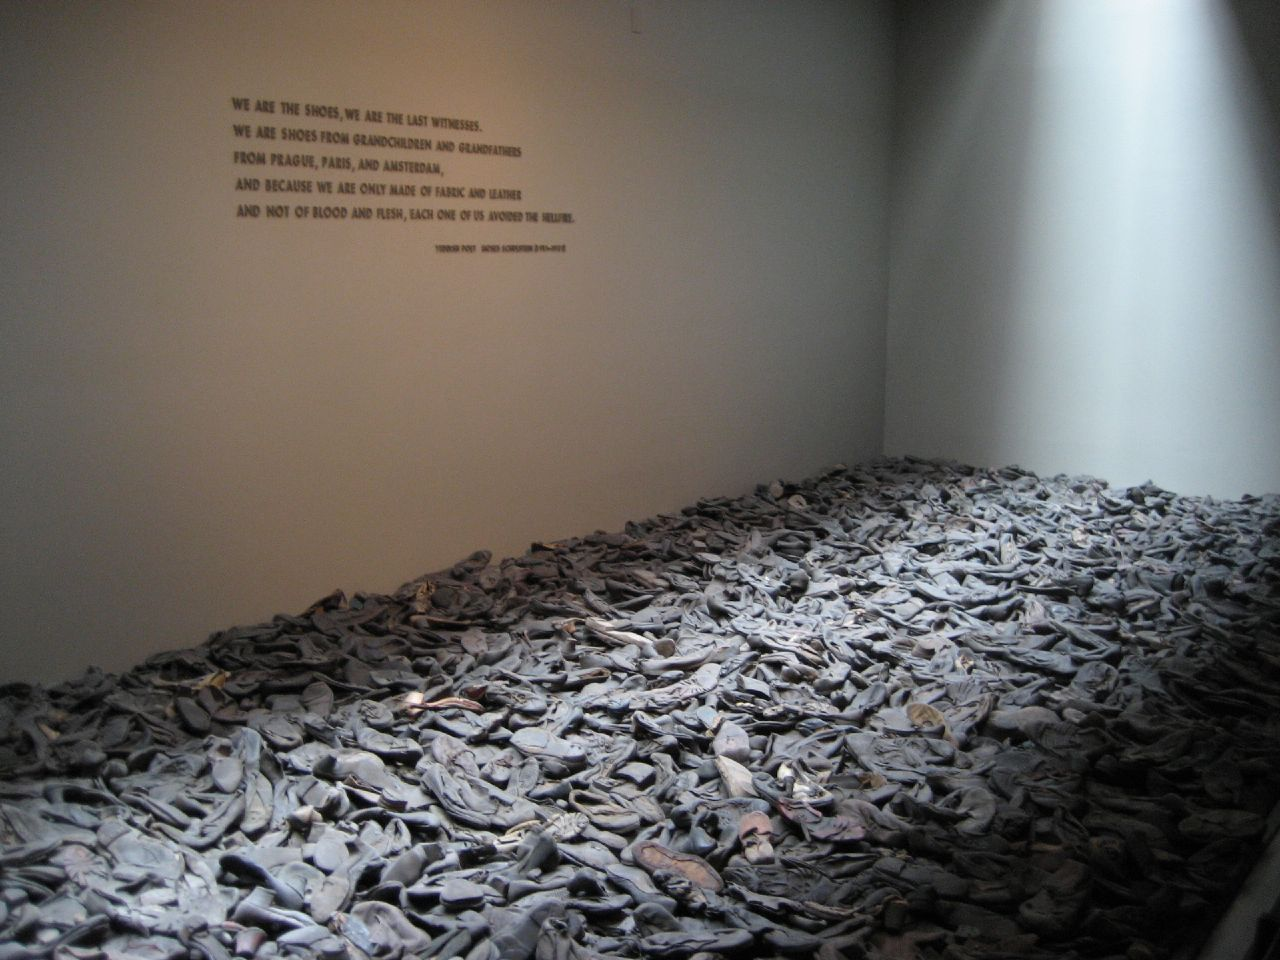 This is a pile of shoes that was like what they did back